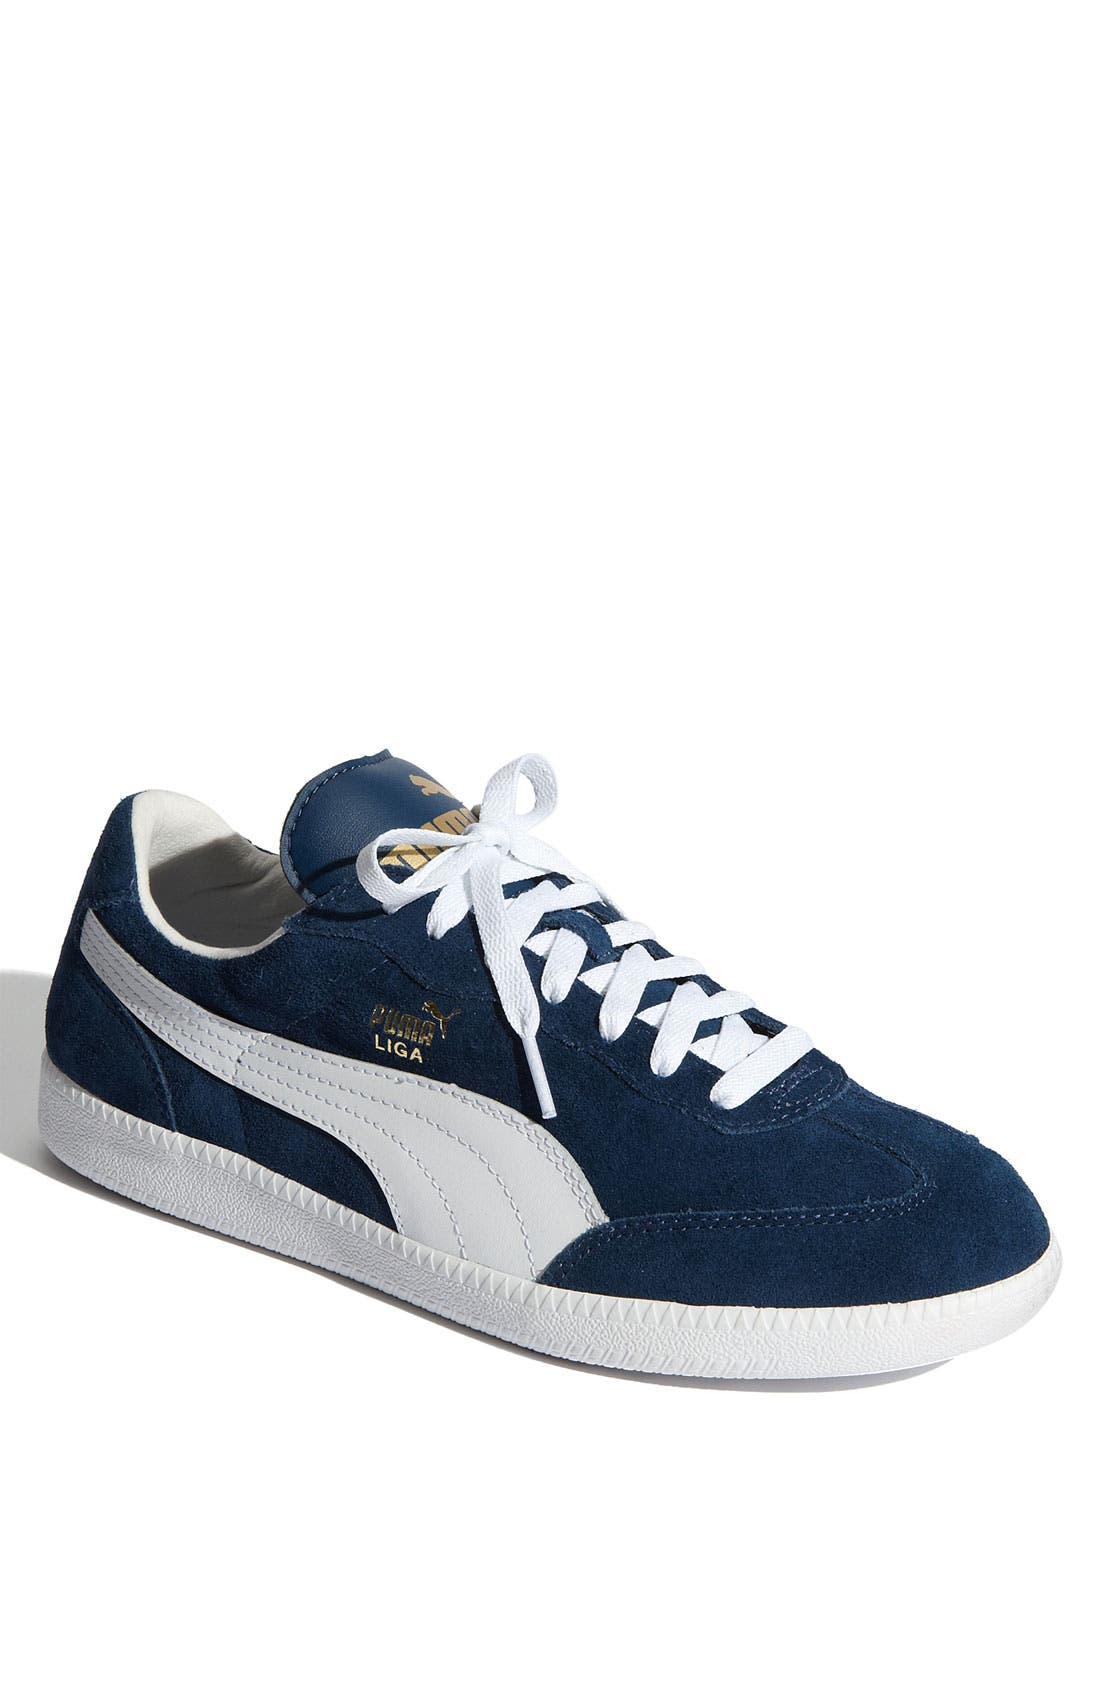 Alternate Image 1 Selected - Puma 'Liga Suede II' Sneaker (Online Exclusive)